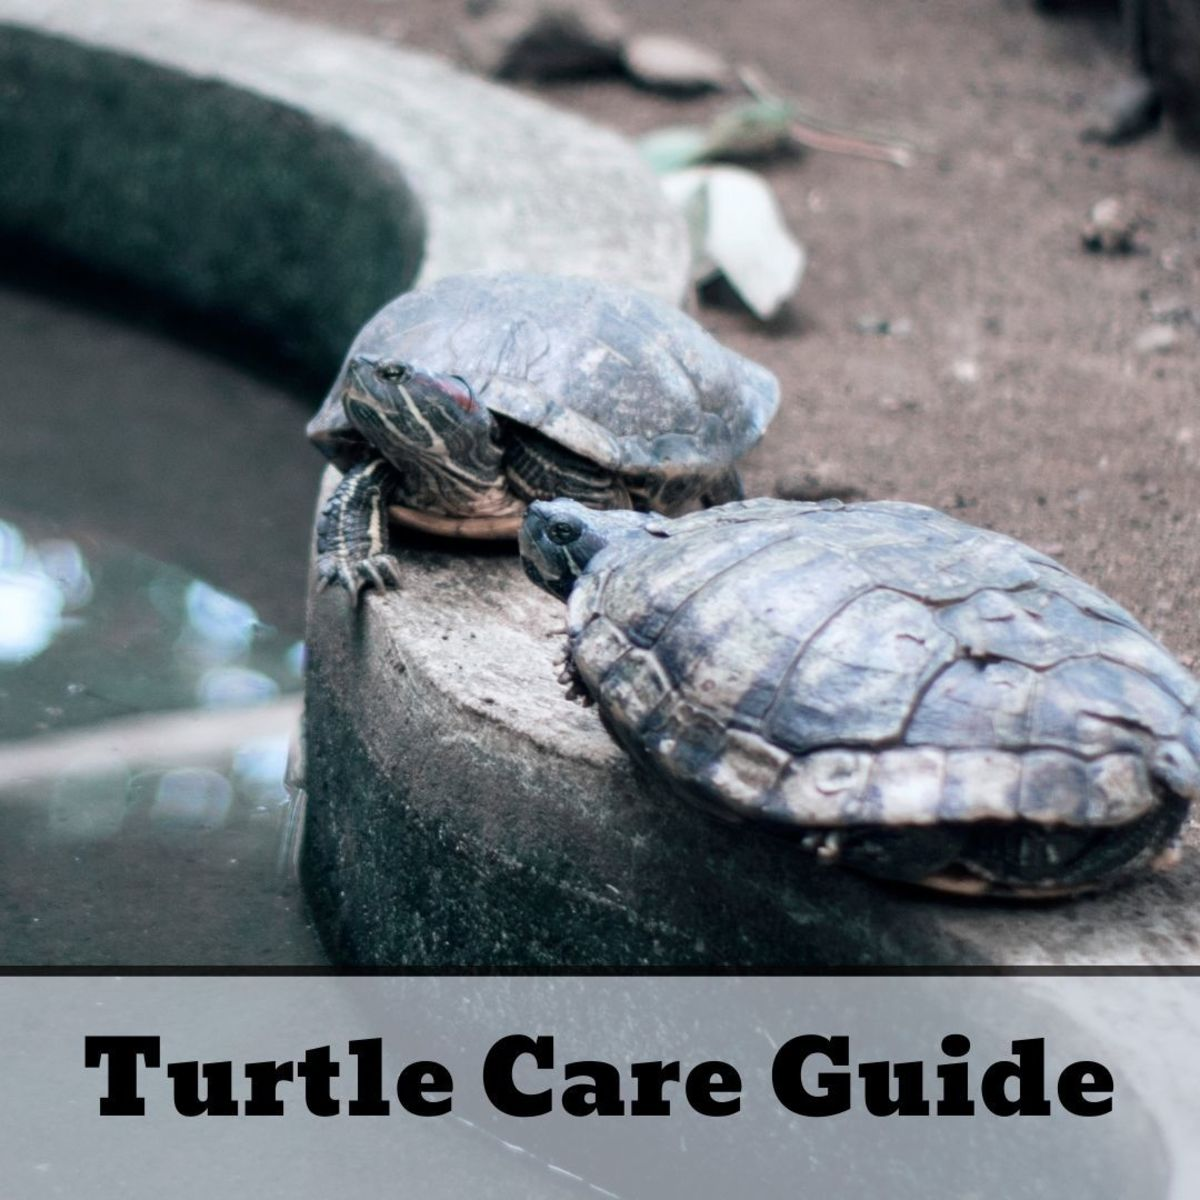 Turtle Care 101: How to Take Care of a Turtle